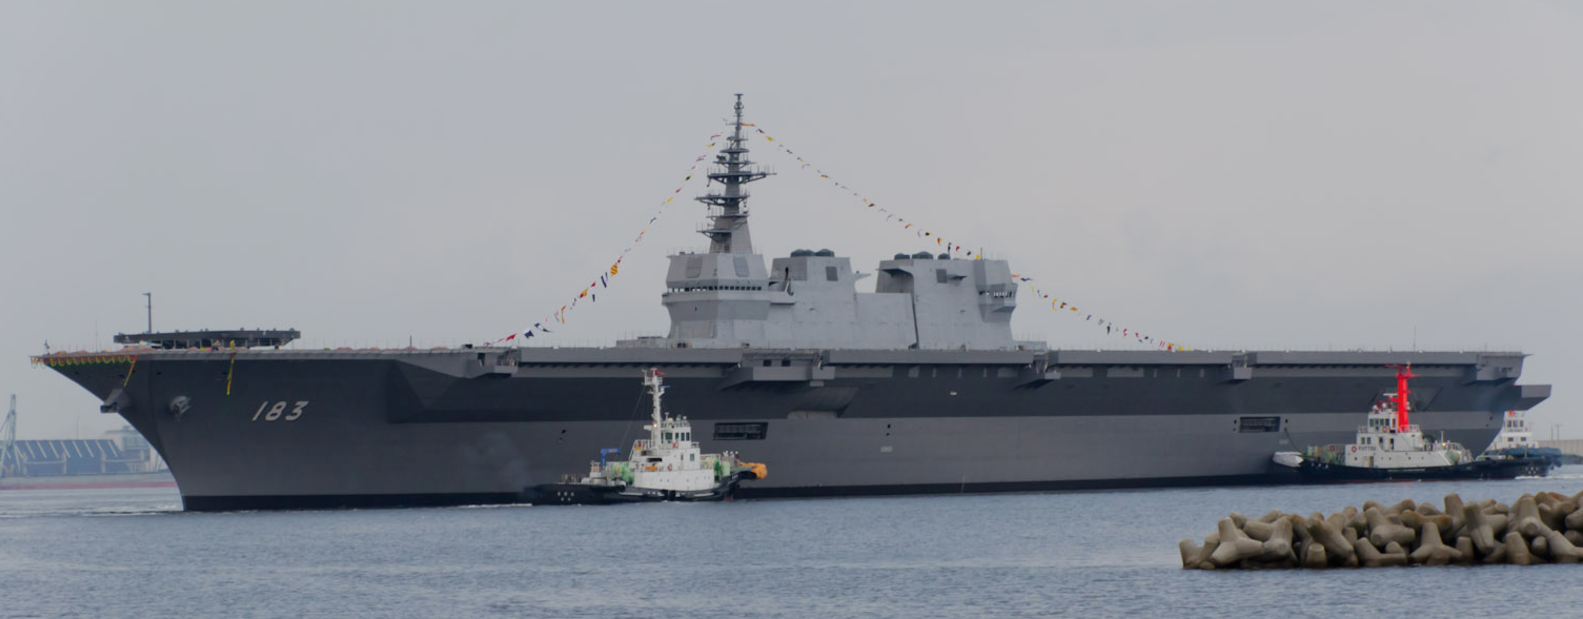 Reuters: Japan Plans To Send Its Largest Warship To South China Sea Featured